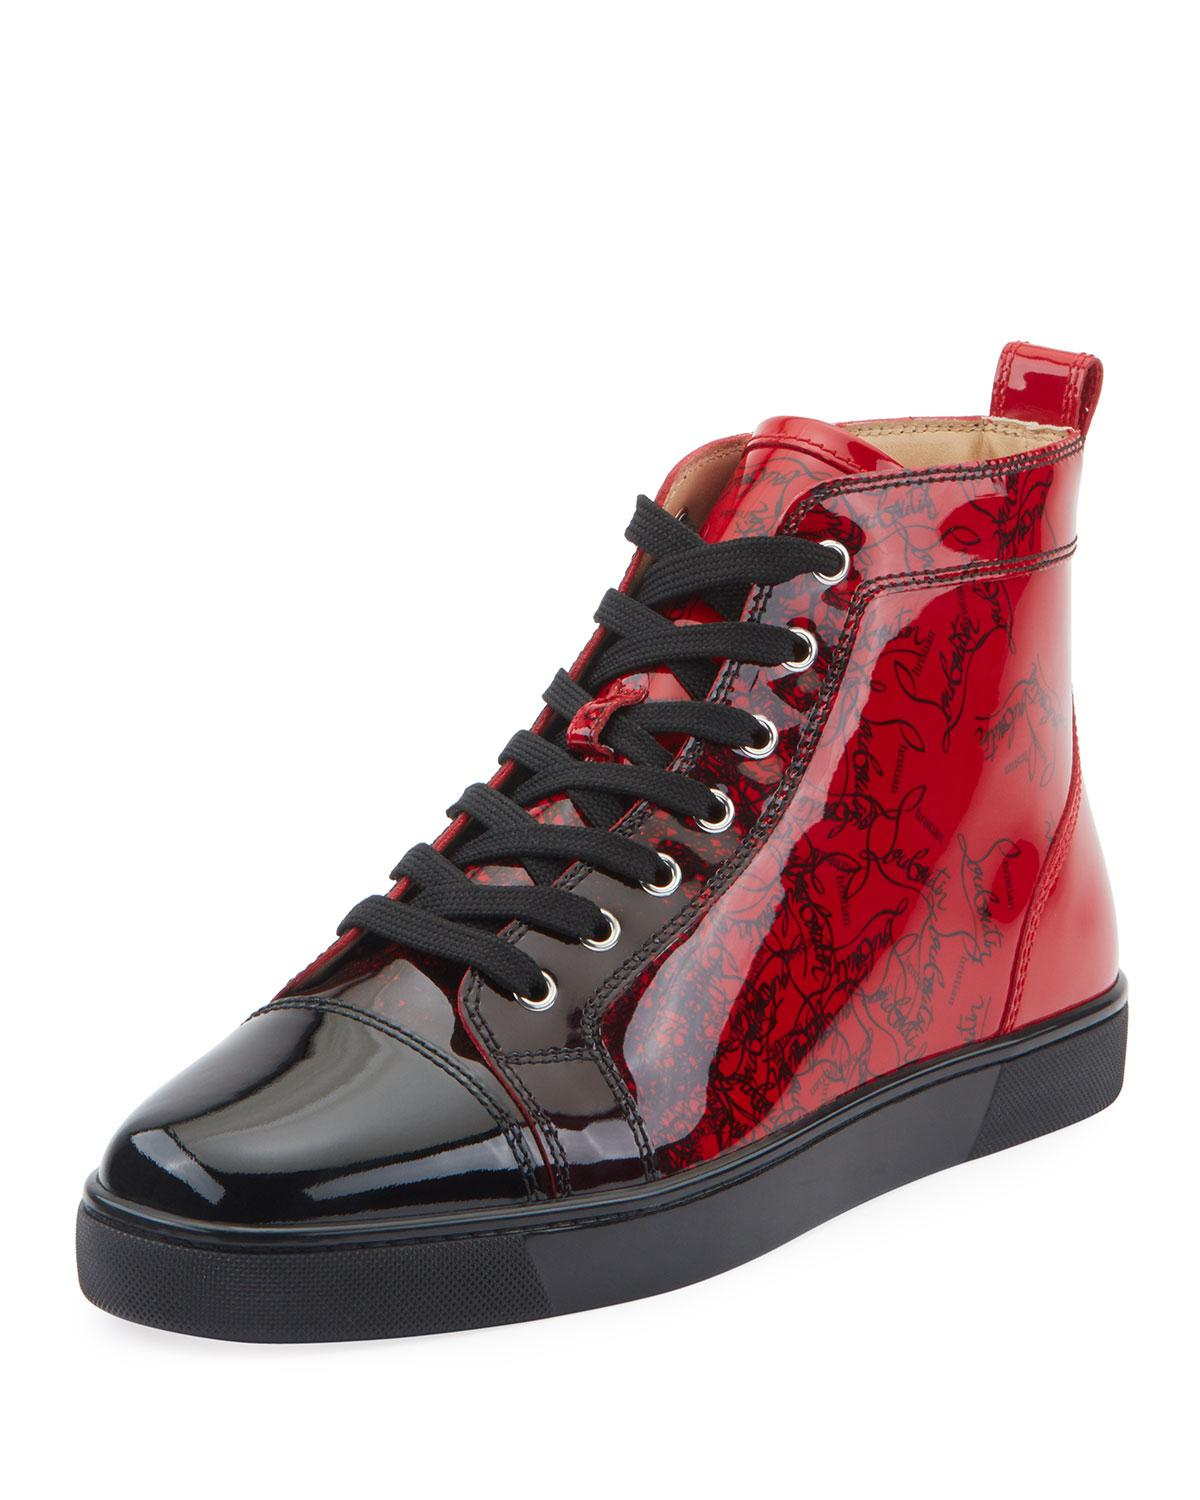 Christian Louboutin Black Men S Louis Ombre Patent Leather High Top Sneakers